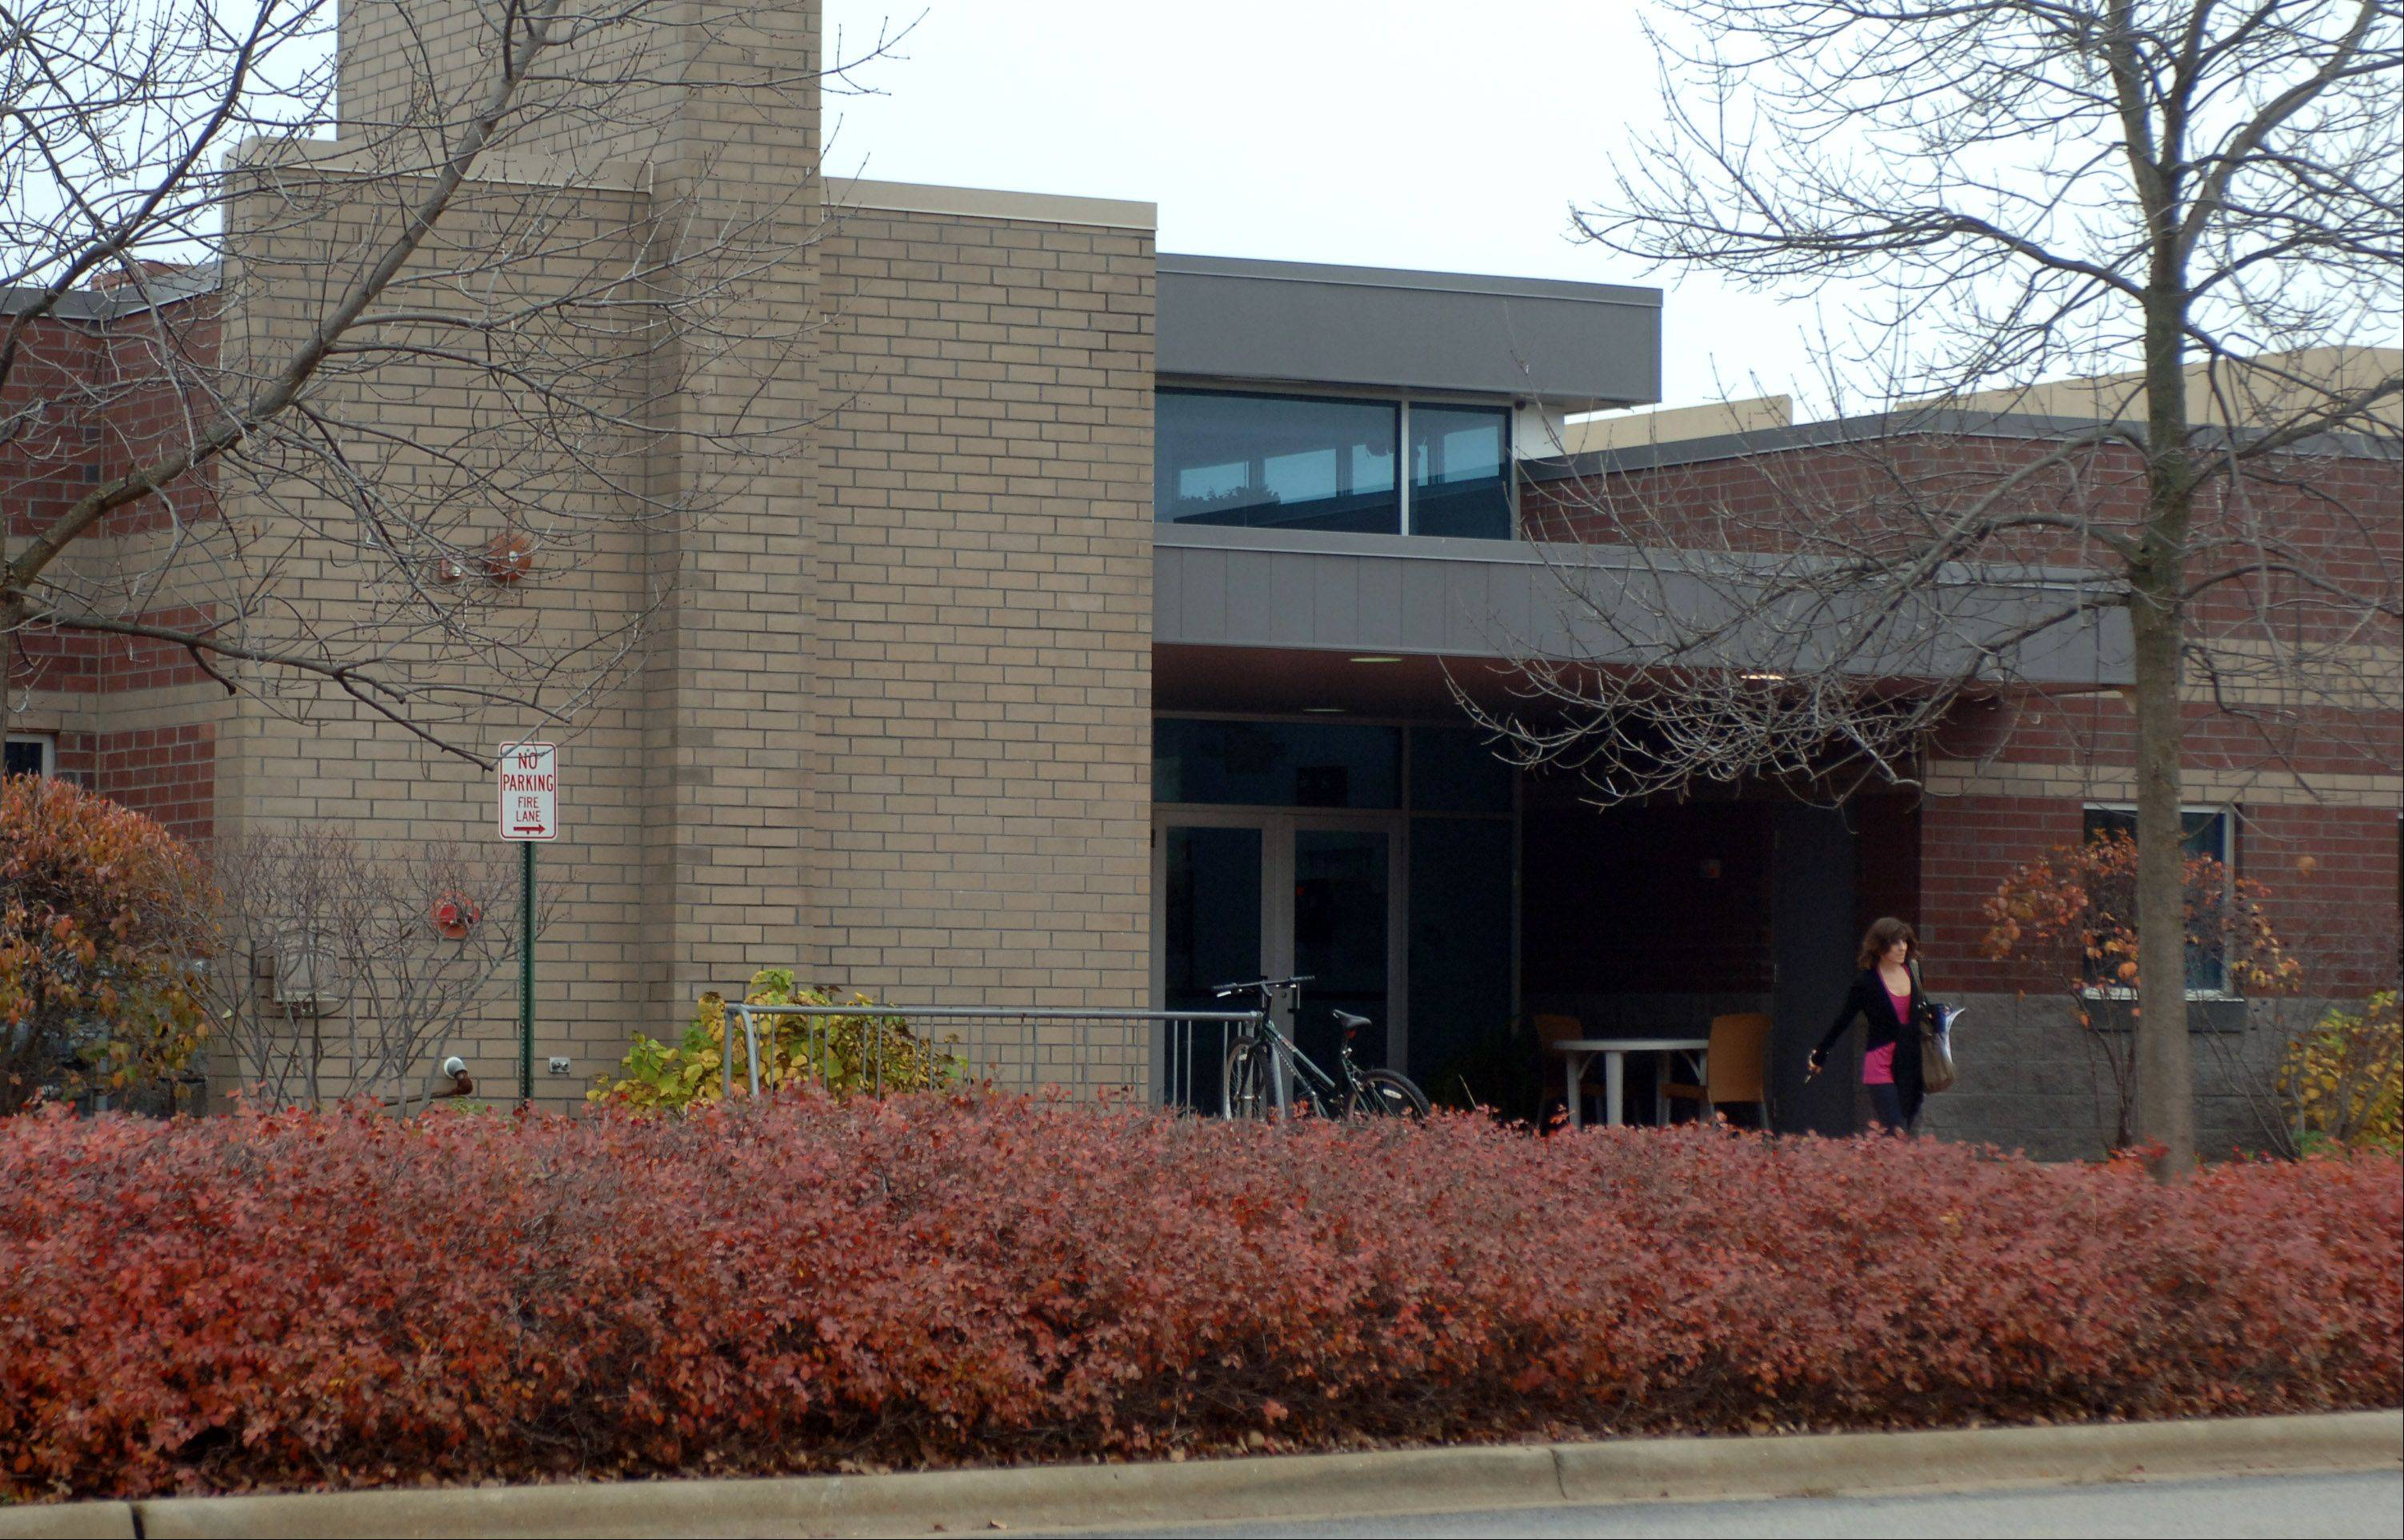 The Vernon Hills Park District is considering buying the Central Lake YMCA building and property for $2 million. The park board could vote on a deal as early as Thursday night.